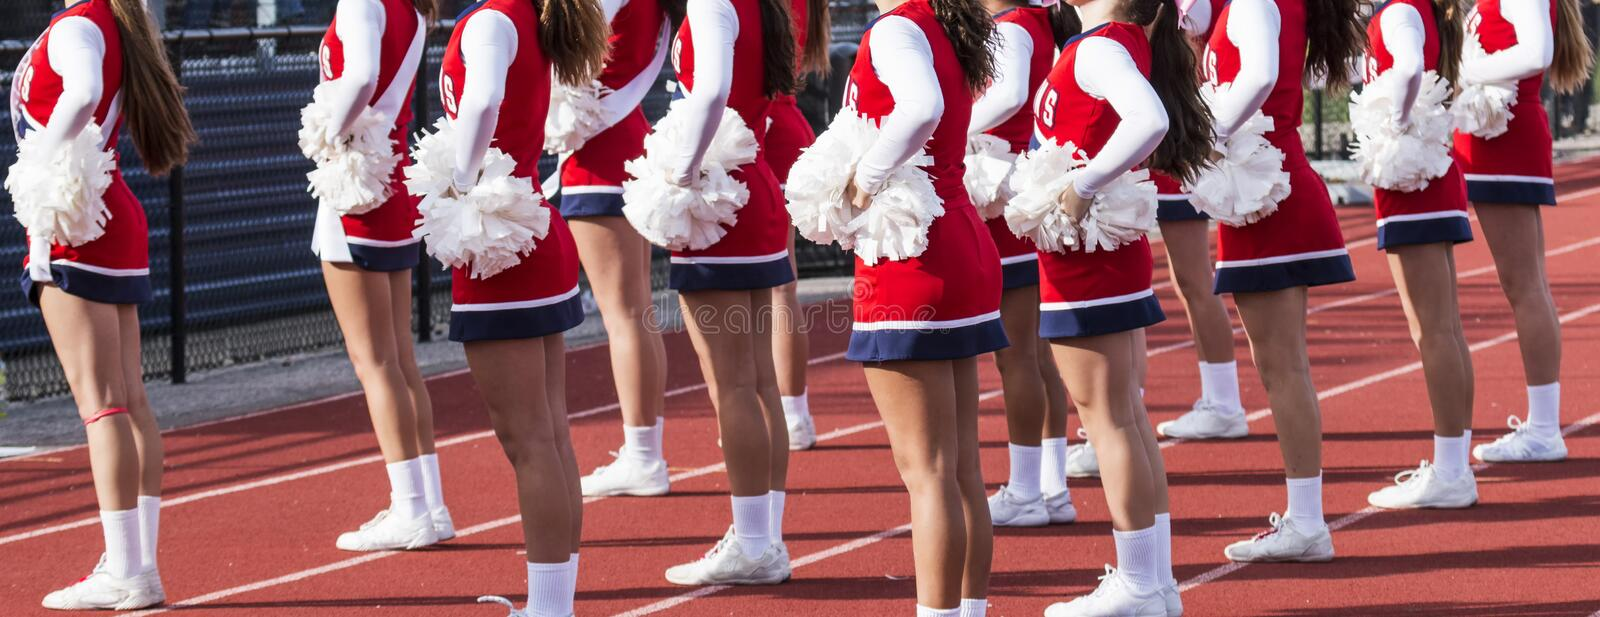 Cheerleaders cheering at a high school football game. Cheerleading squad performing a routine in fron of the home fans at a high school football game royalty free stock photo